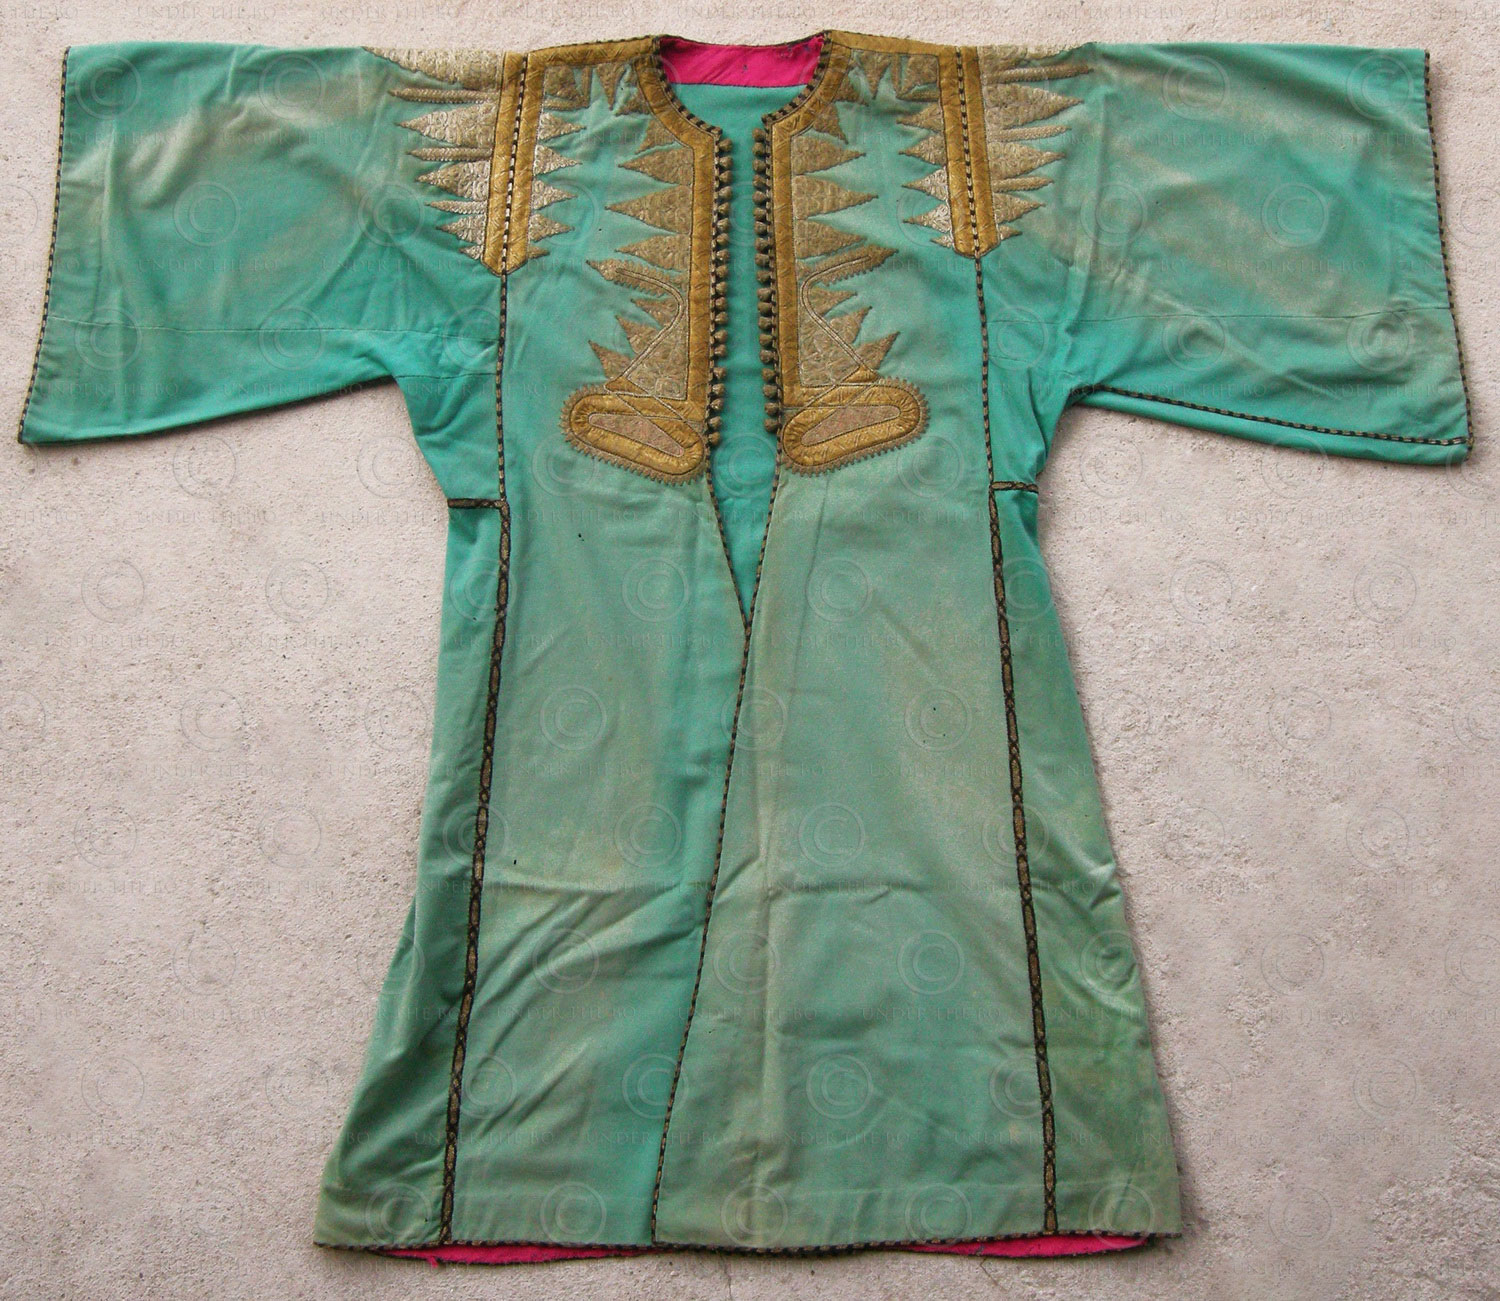 Ottoman ceremonial coat PAK43. Purchased in Syria in the early 1920s. 19th century.